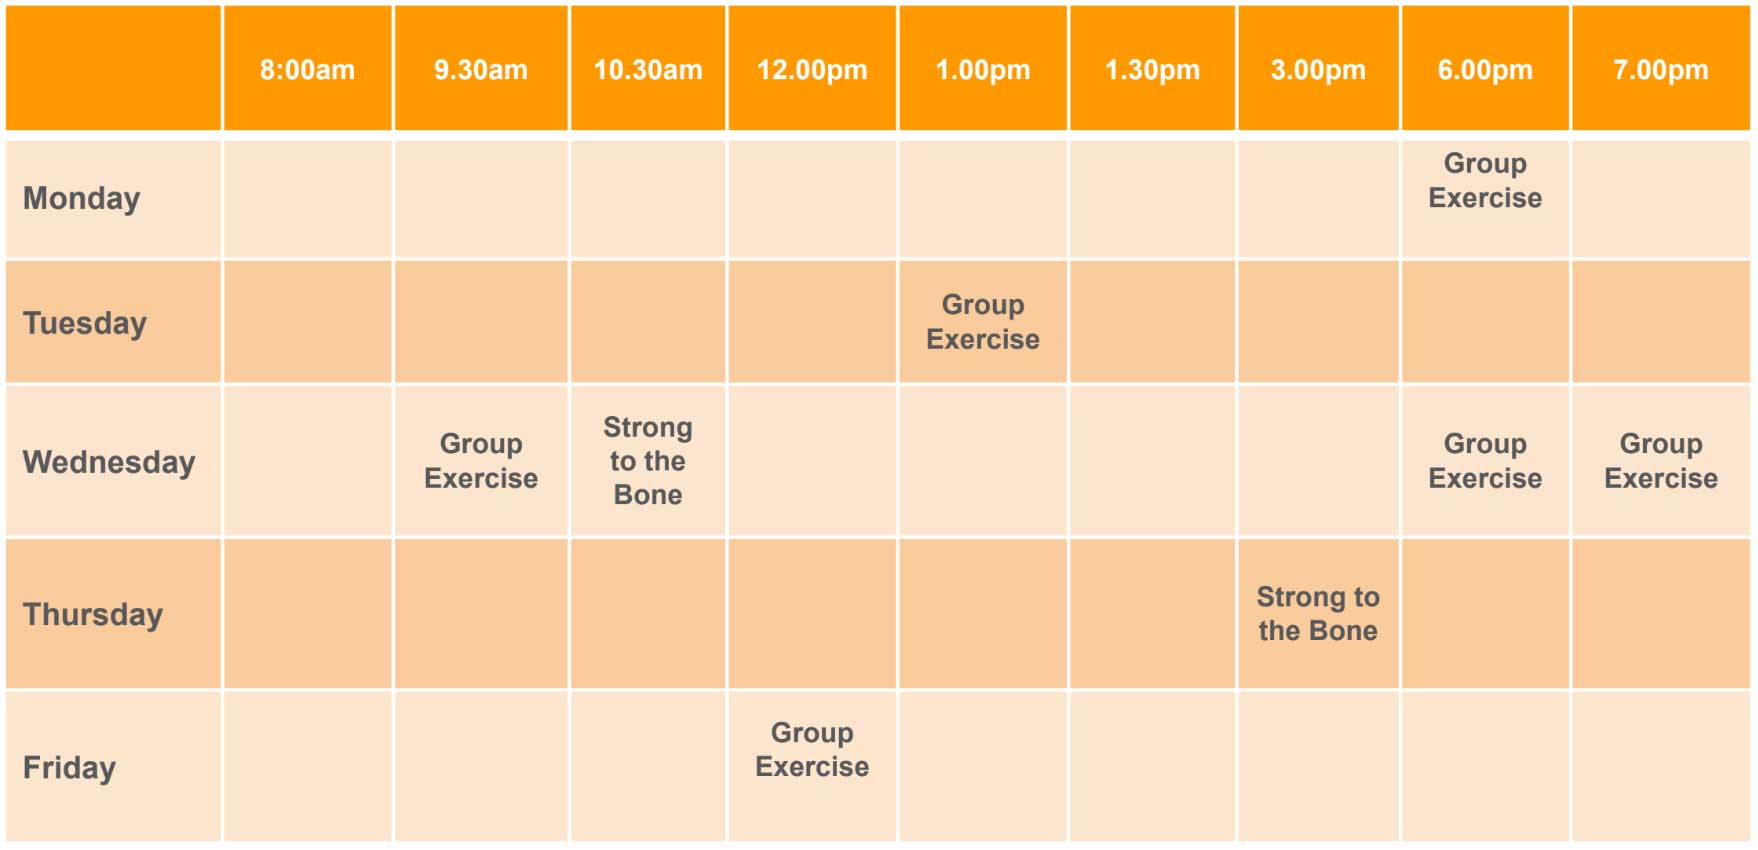 group-exercise-timetable